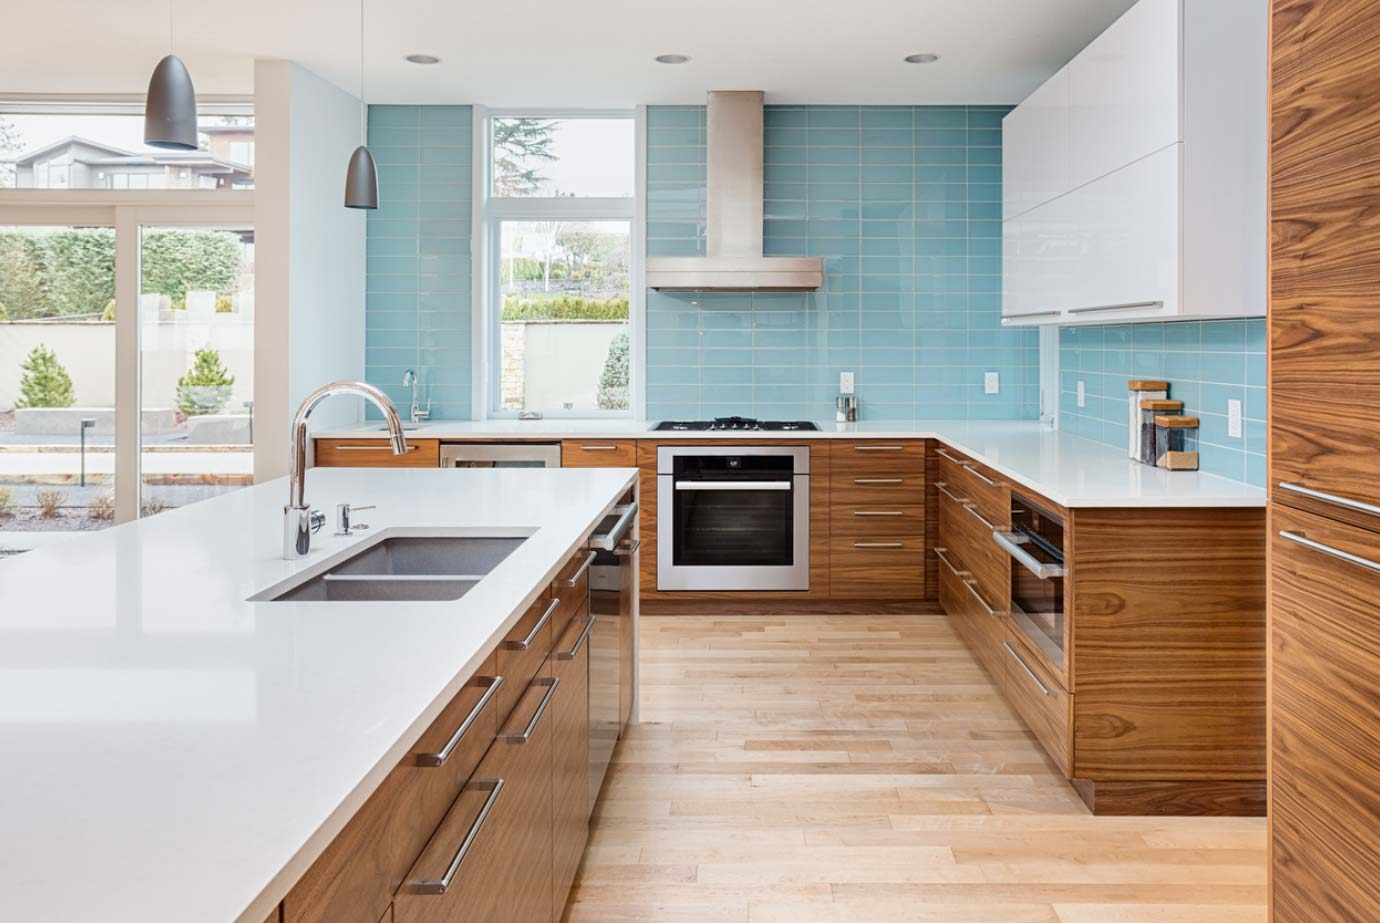 Should Your Flooring Match Your Cabinets?